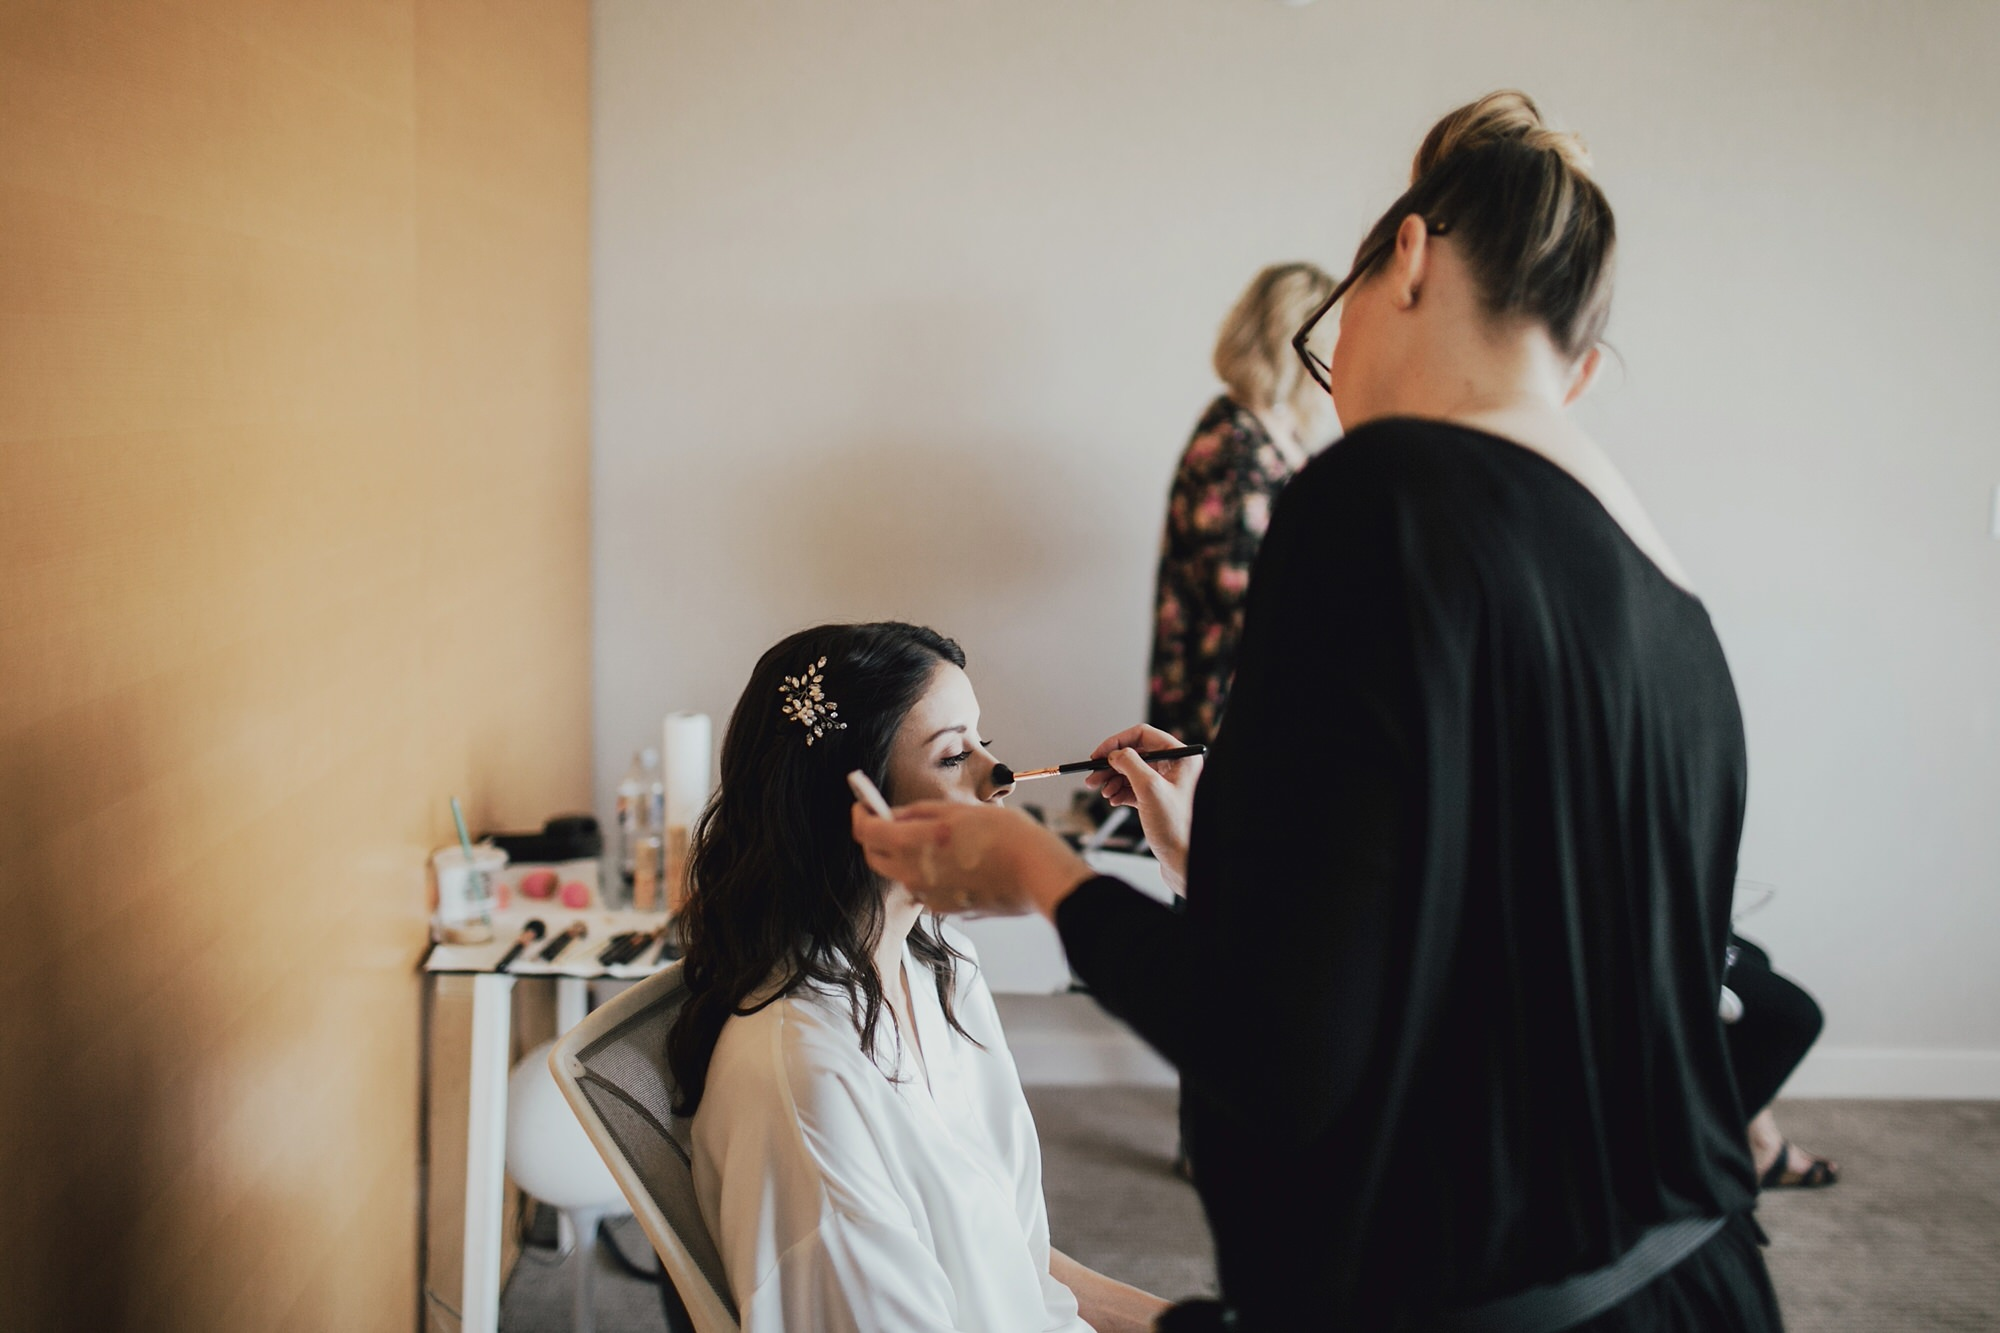 christine getting ready on her wedding day in long beach